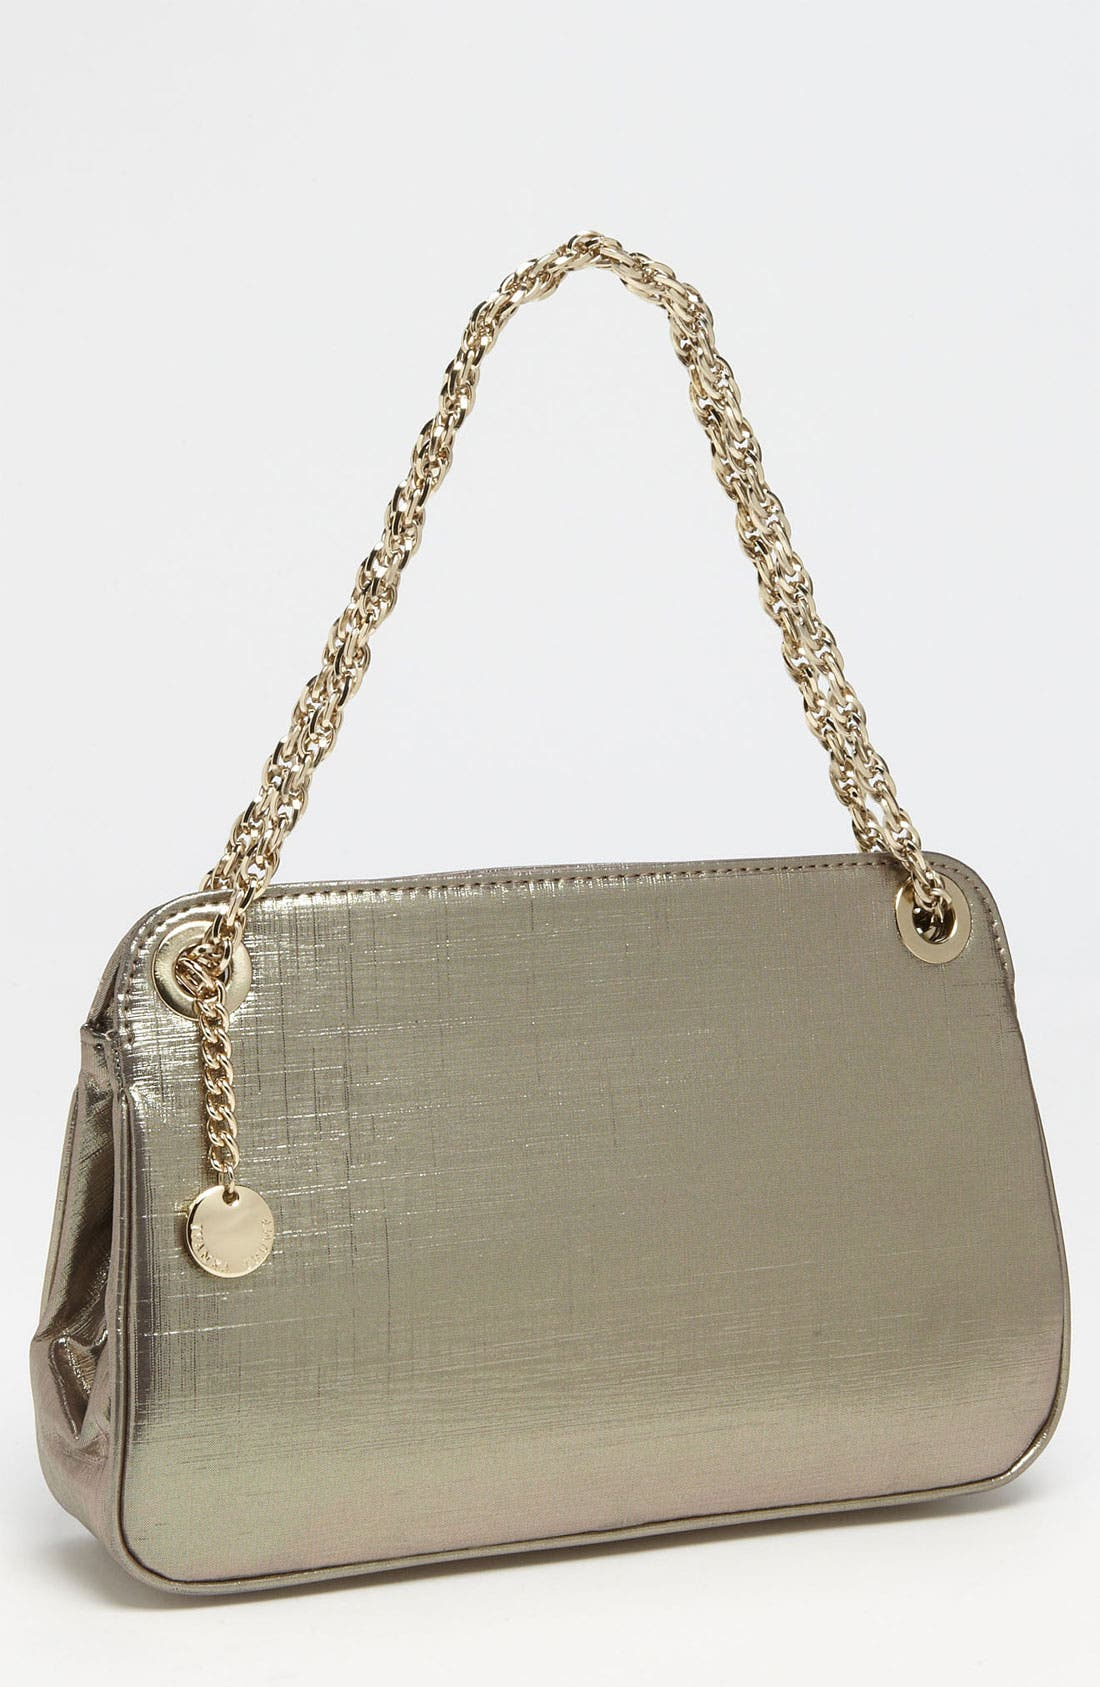 Alternate Image 1 Selected - Ivanka Trump 'Cynthia' Shoulder Bag